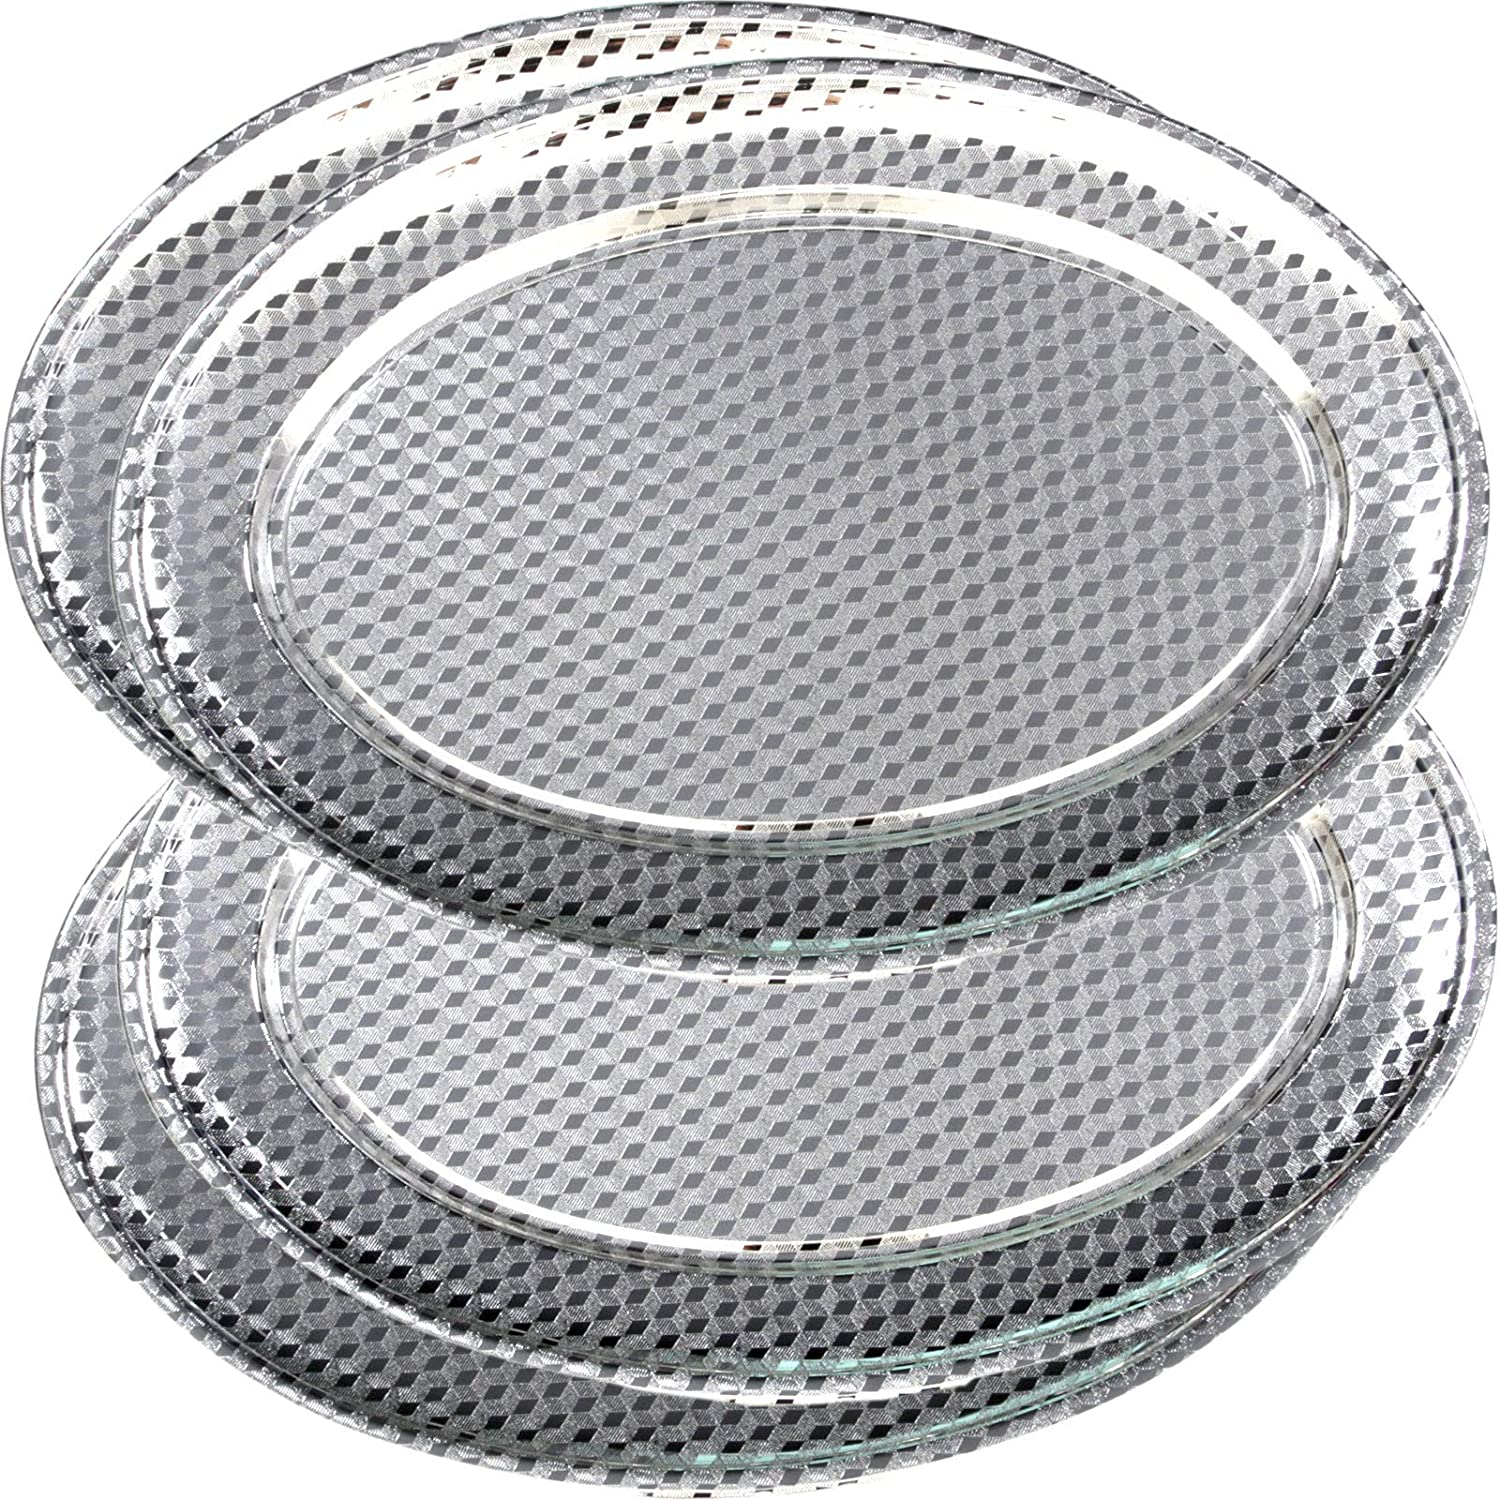 """Maro Megastore (Pack of 4) Oval Chrome Plated Serving Tray Edge Brick Engraved Decorative Wedding Birthday Dessert Cake Snack Wine Candle Platter Plate Party 3284 (4-Pack 19.7"""" x 13.4"""")"""